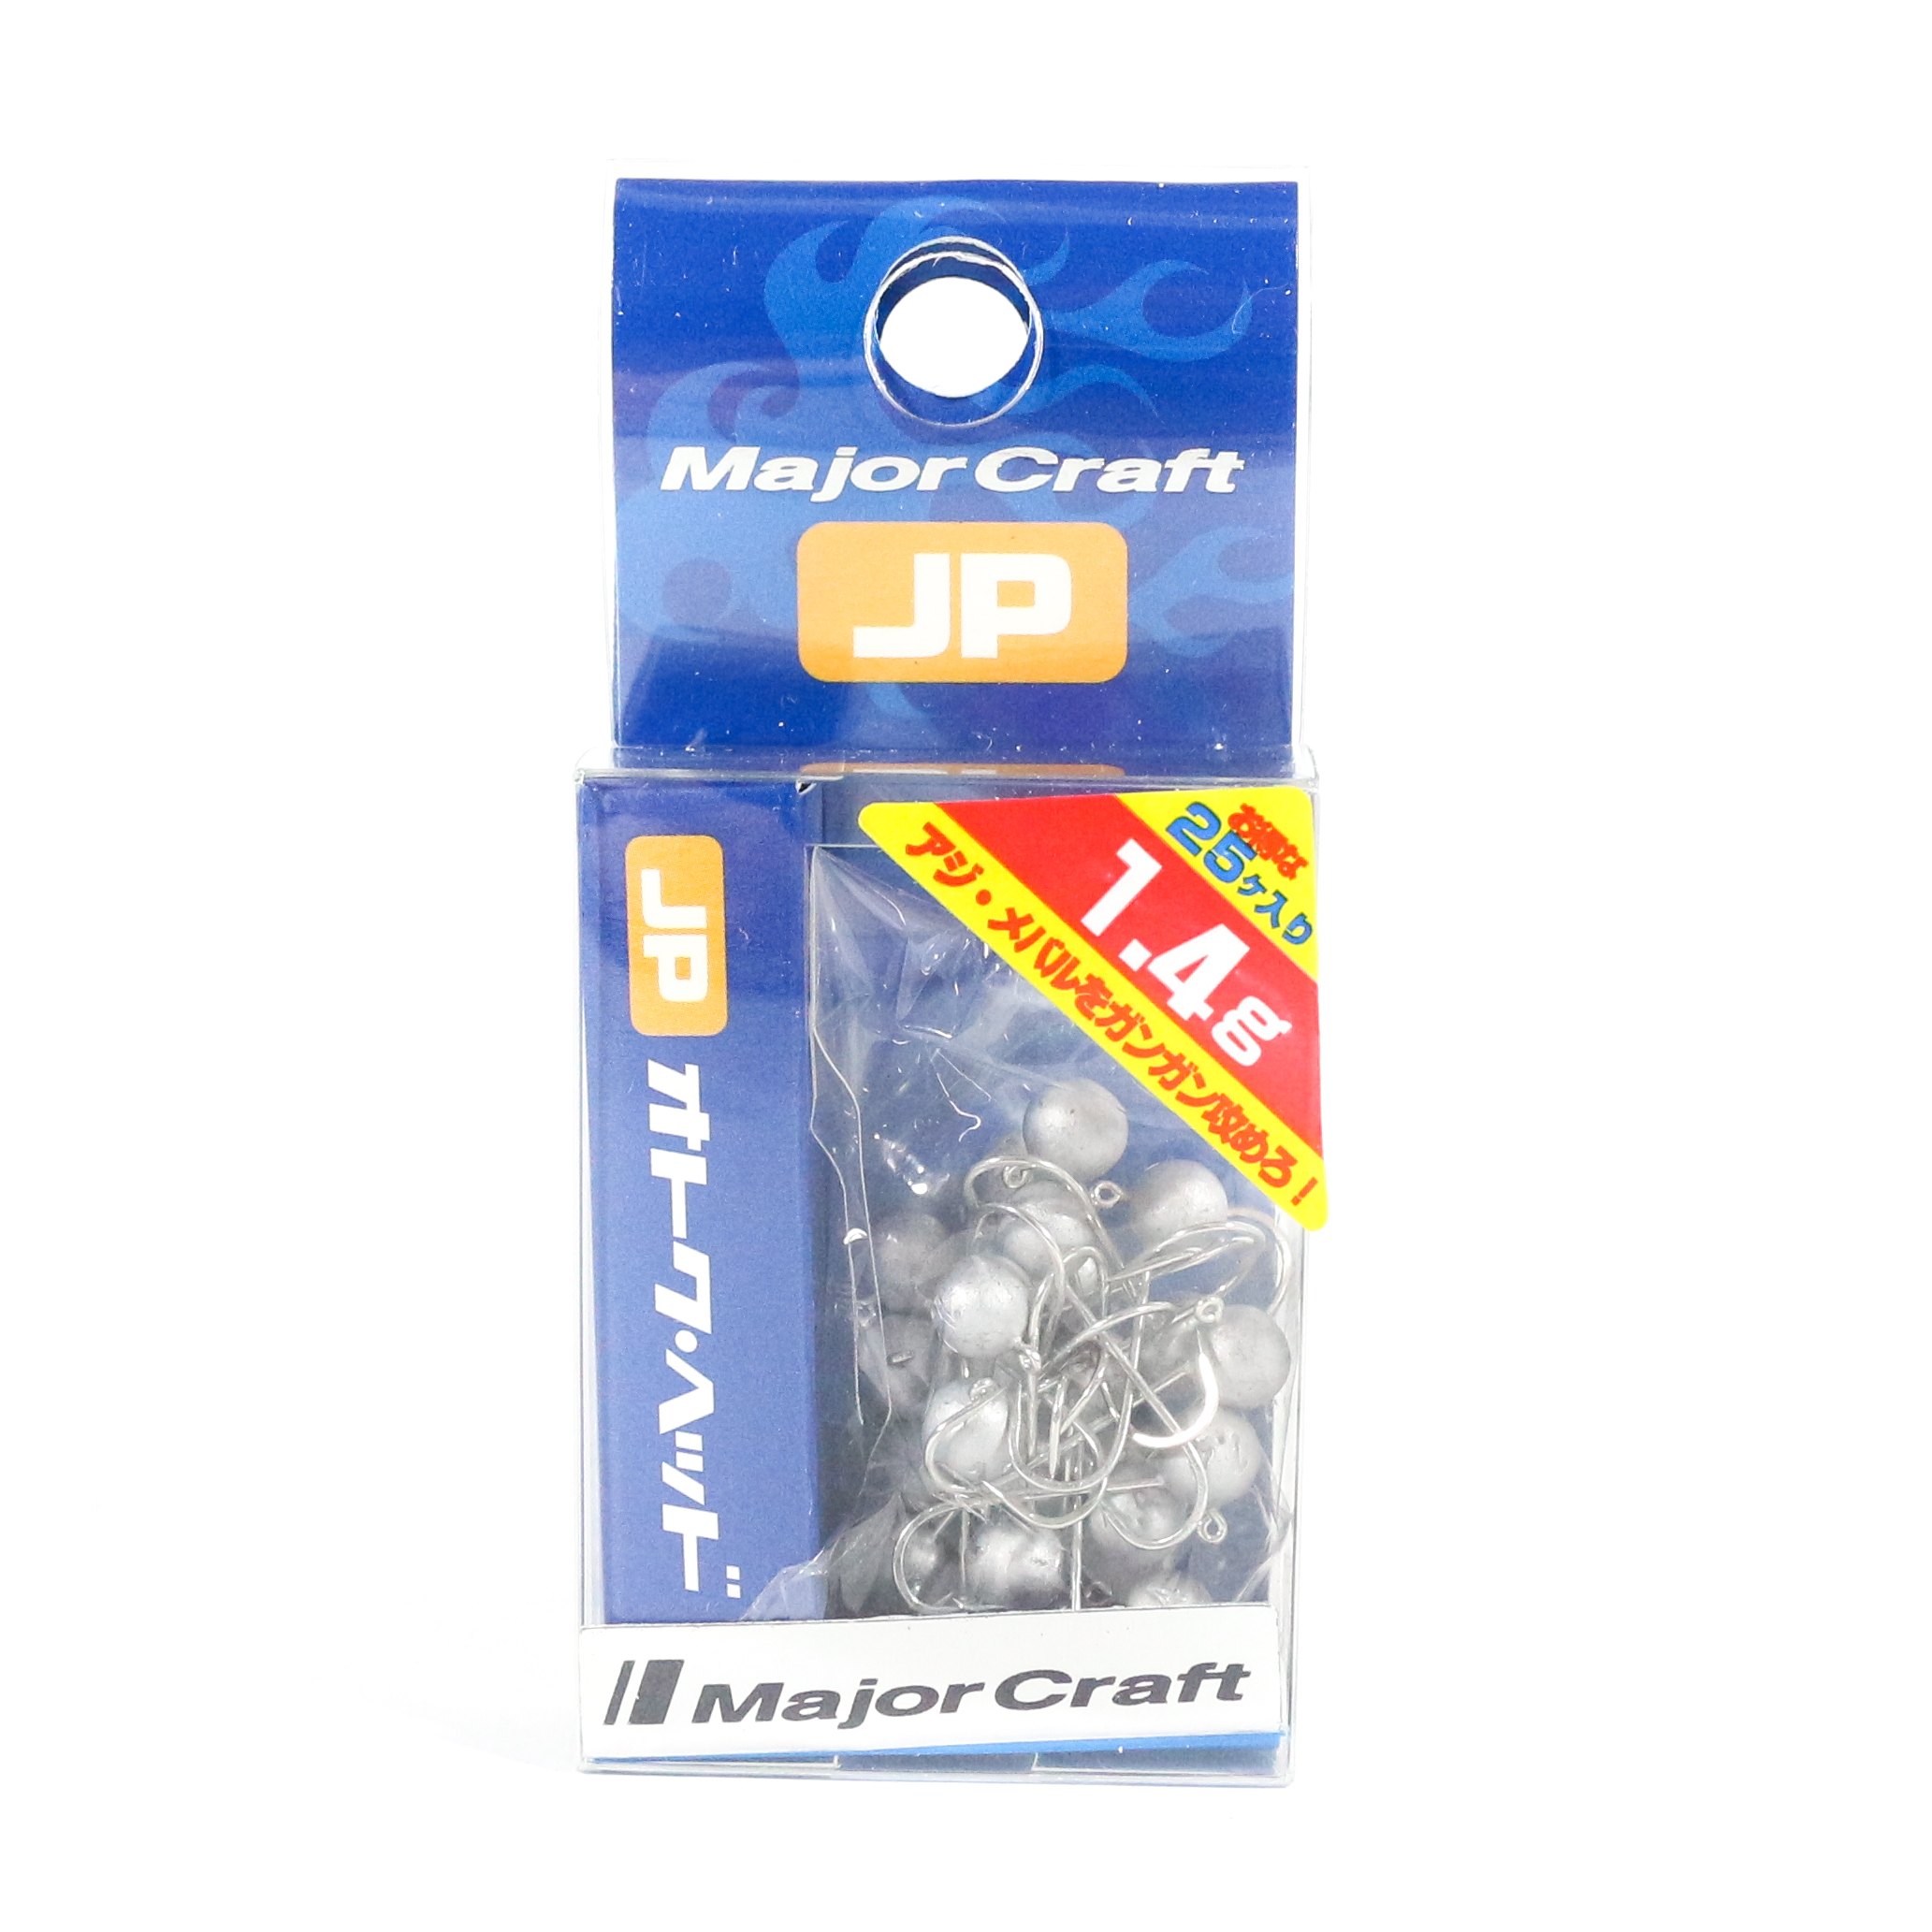 Major Craft Jig Head OTHD-1.4 grams Size 8 25 piece pack (6528)